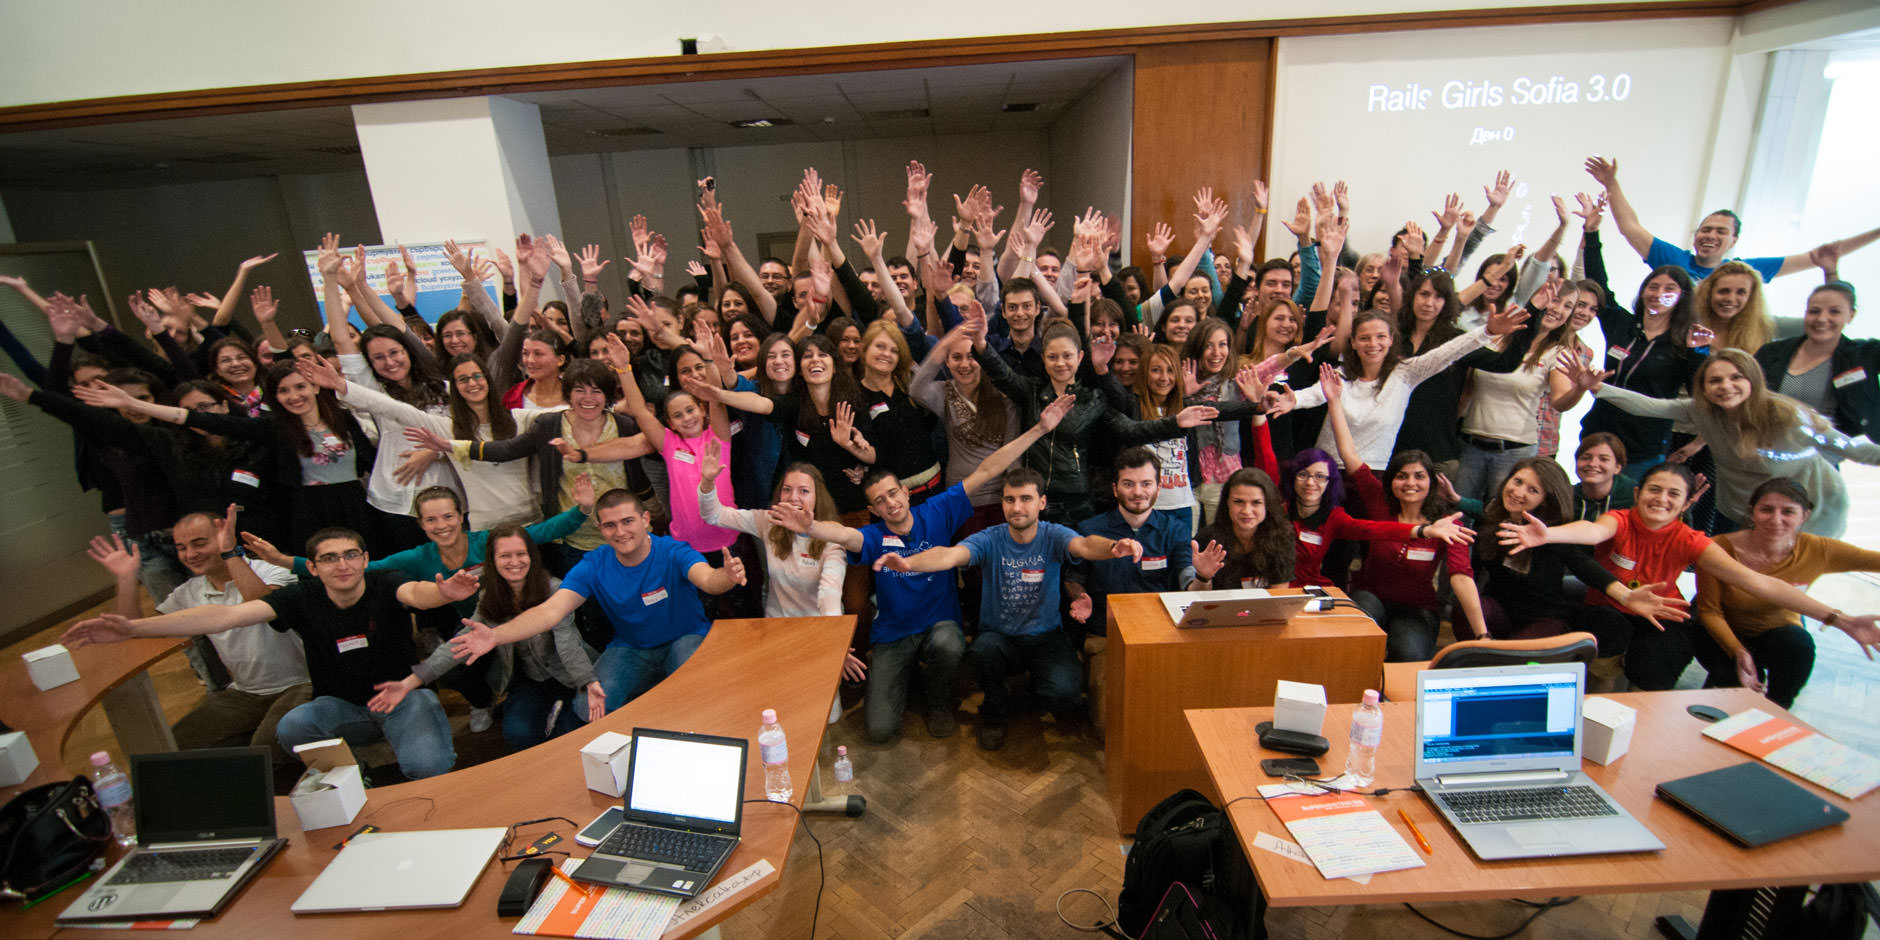 Rails Girls Sofia October 2014 Group Photo